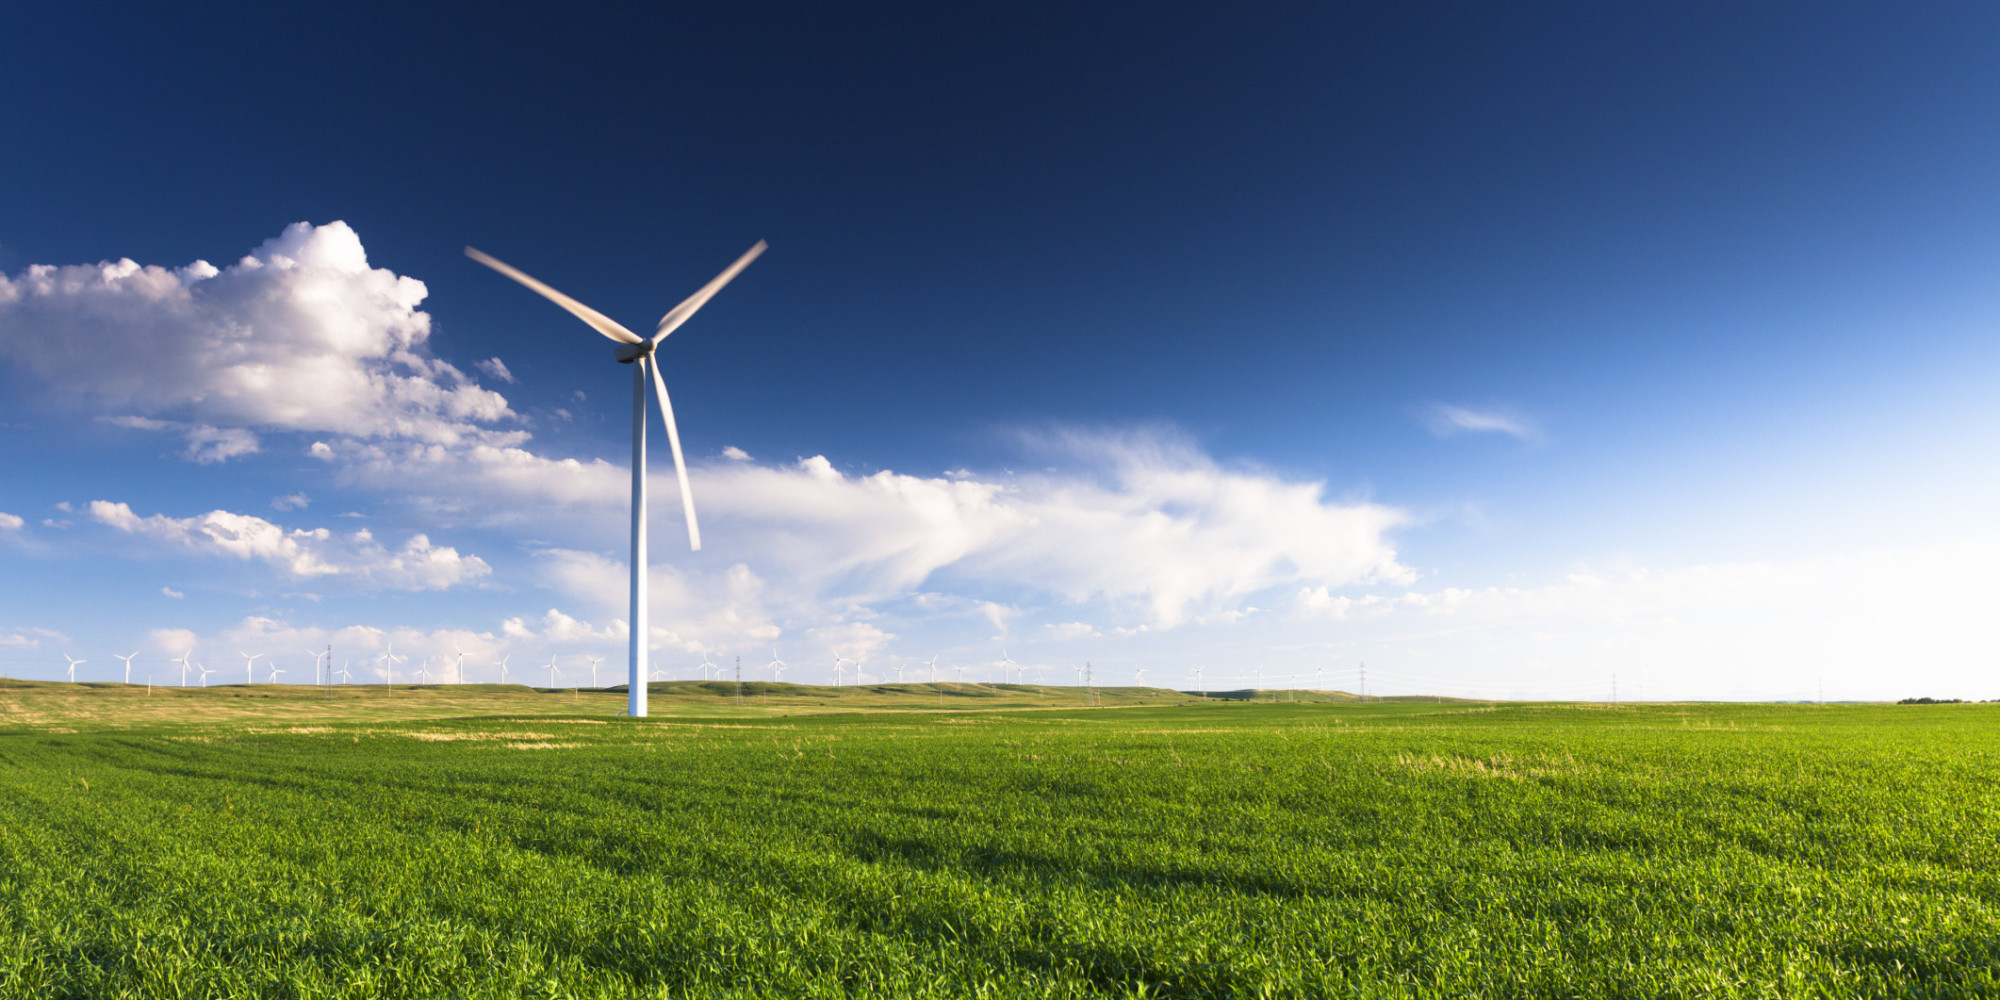 essay on is wind power green